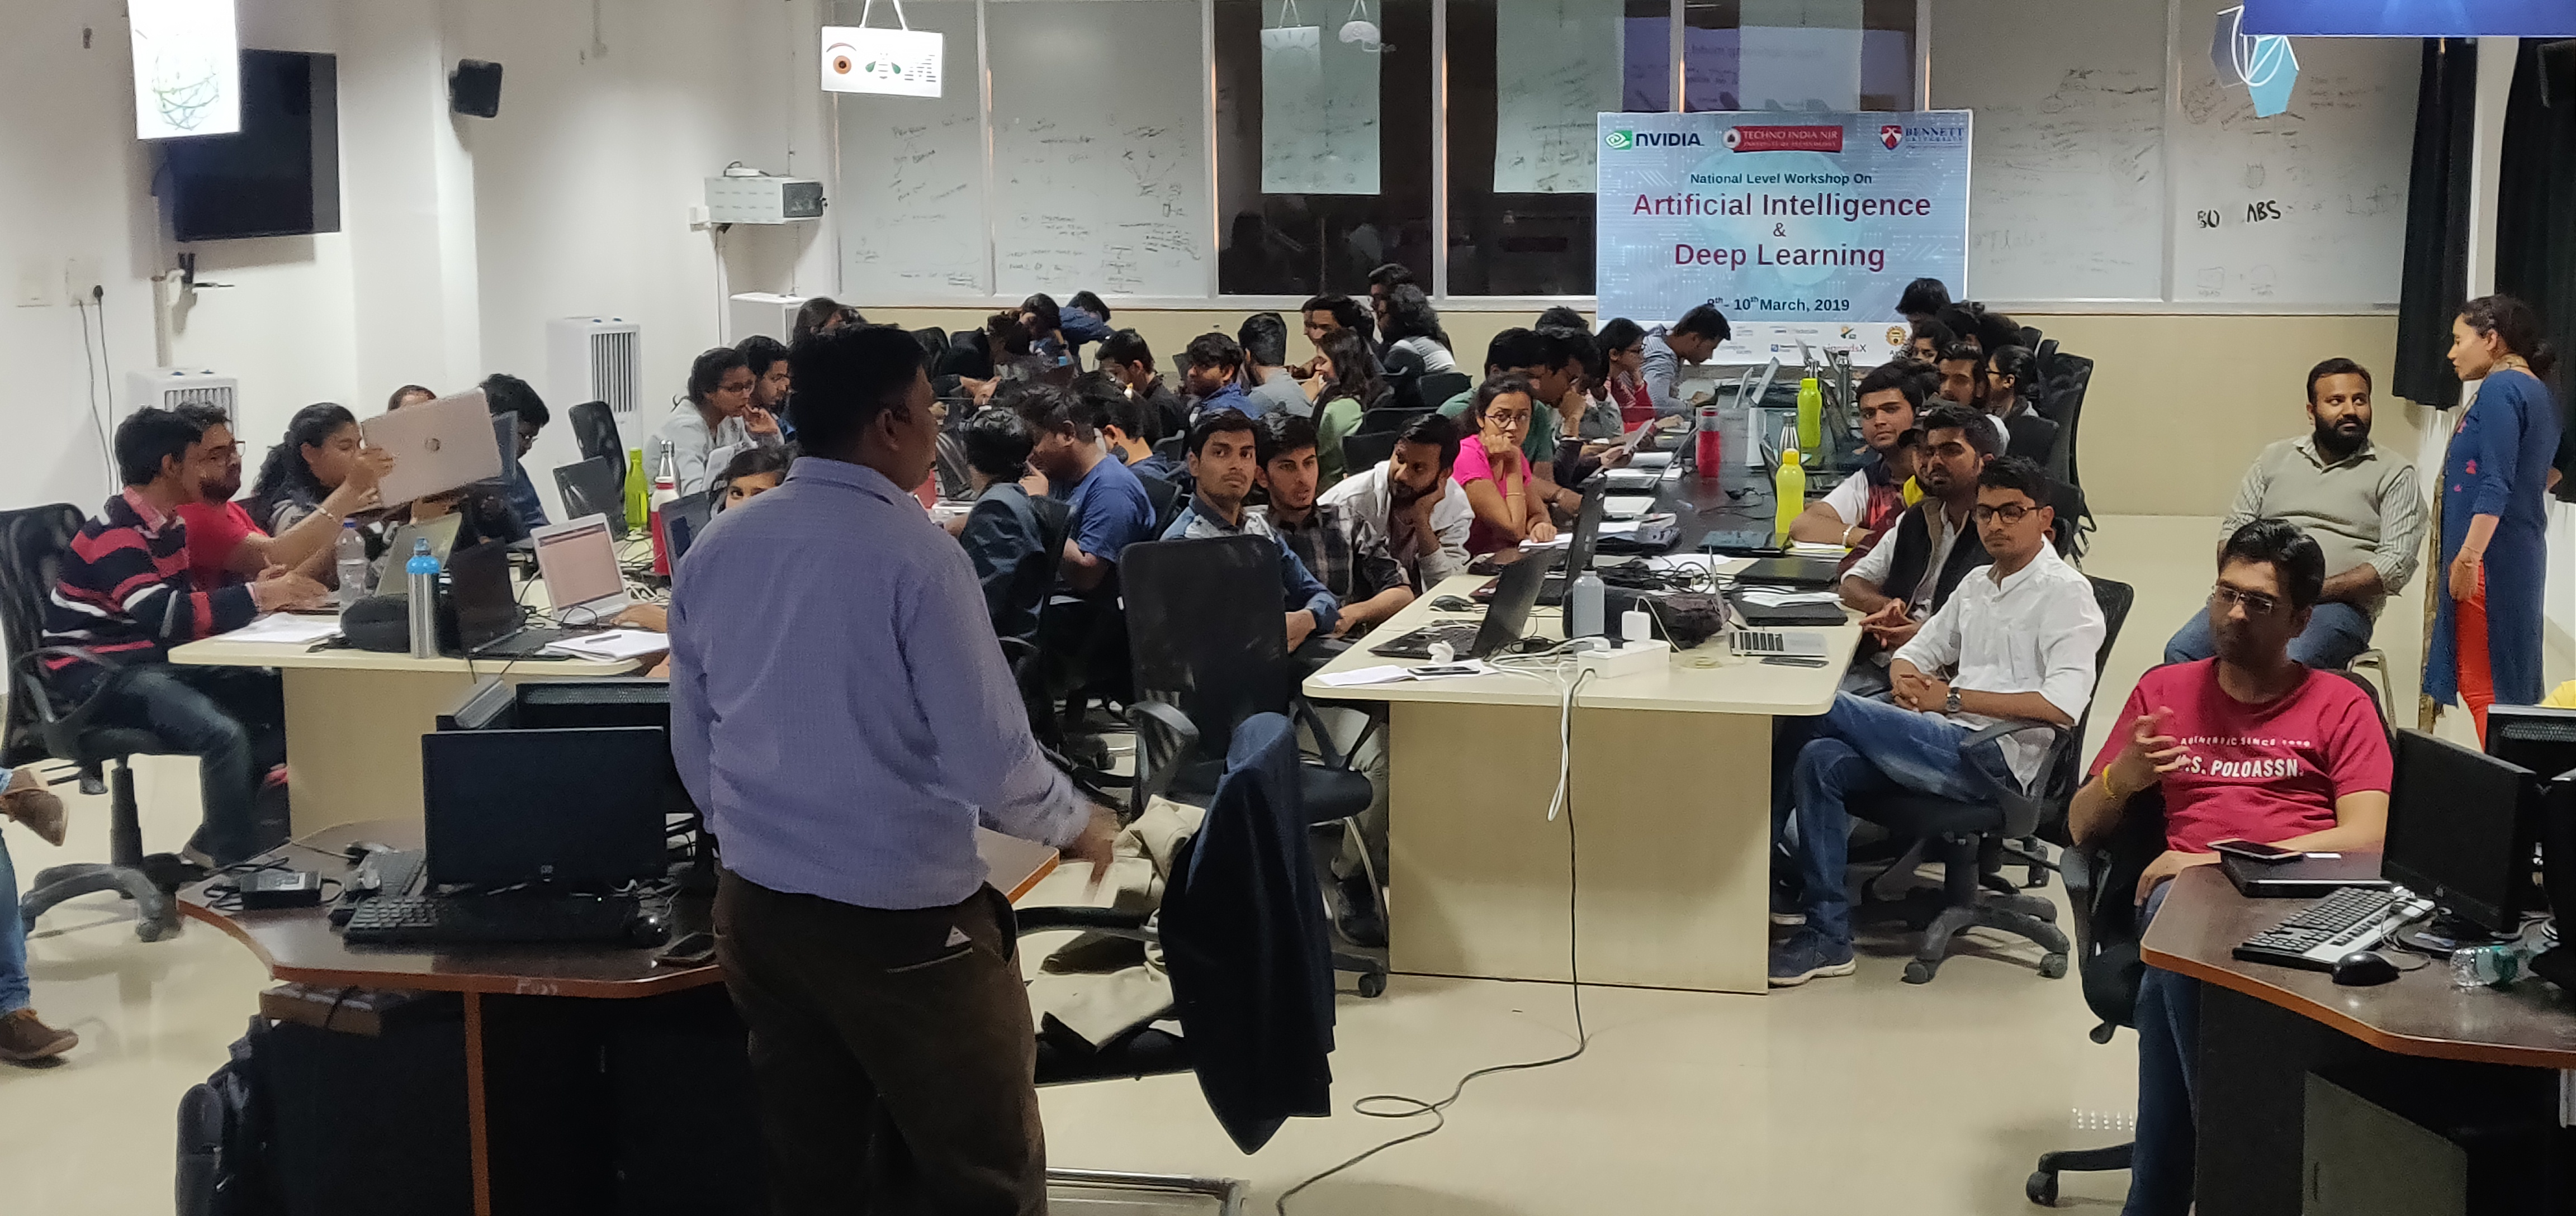 Techno India NJR Conducts 3 days National Level Workshop on AI & Deep Learning in collaboration with NVIDIA